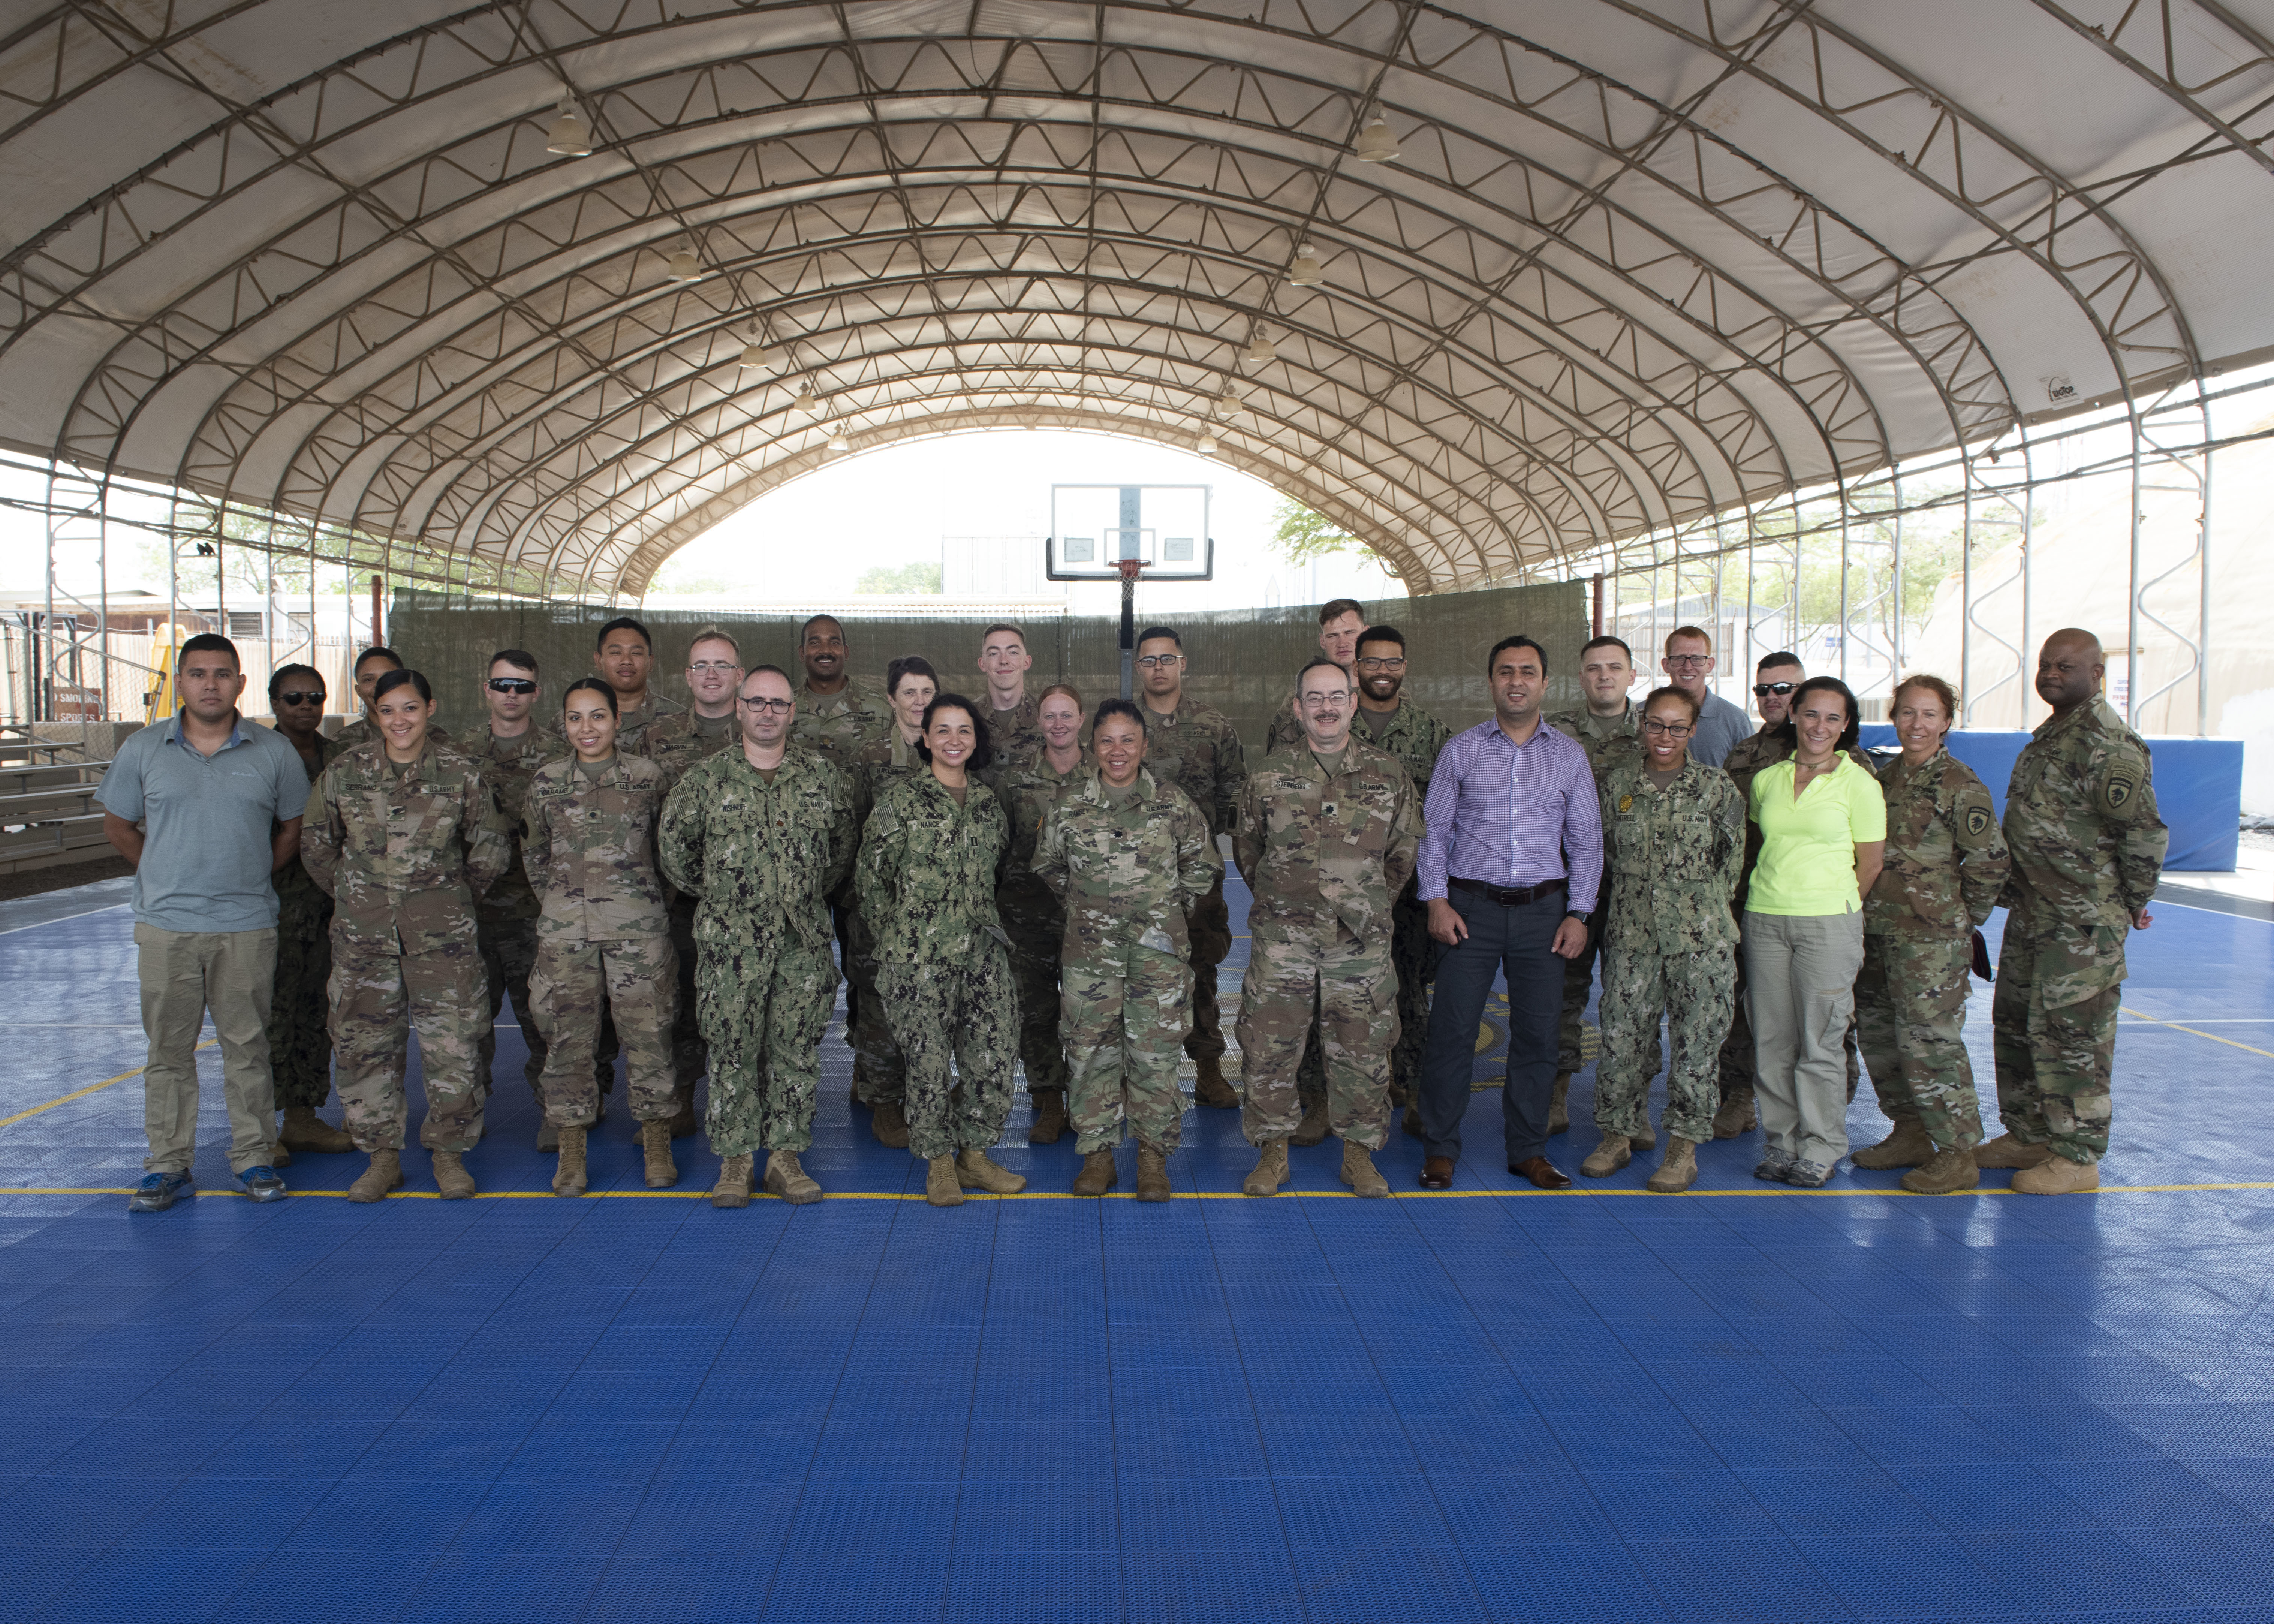 Members from Combined Joint Task Force-Horn of Africa (CJTF-HOA) and the Center for Global Health Engagement, Uniformed Services University, Maryland, pose for a photo during a Fundamentals of Global Health Engagement (FOGHE) course at Camp Lemonnier, Djibouti, June 11, 2019. The FOGHE is a three-day course to improve understanding of the full array of issues surrounding and shaping global health engagements. (U.S. Air Force photo by Staff Sgt. Franklin R. Ramos)